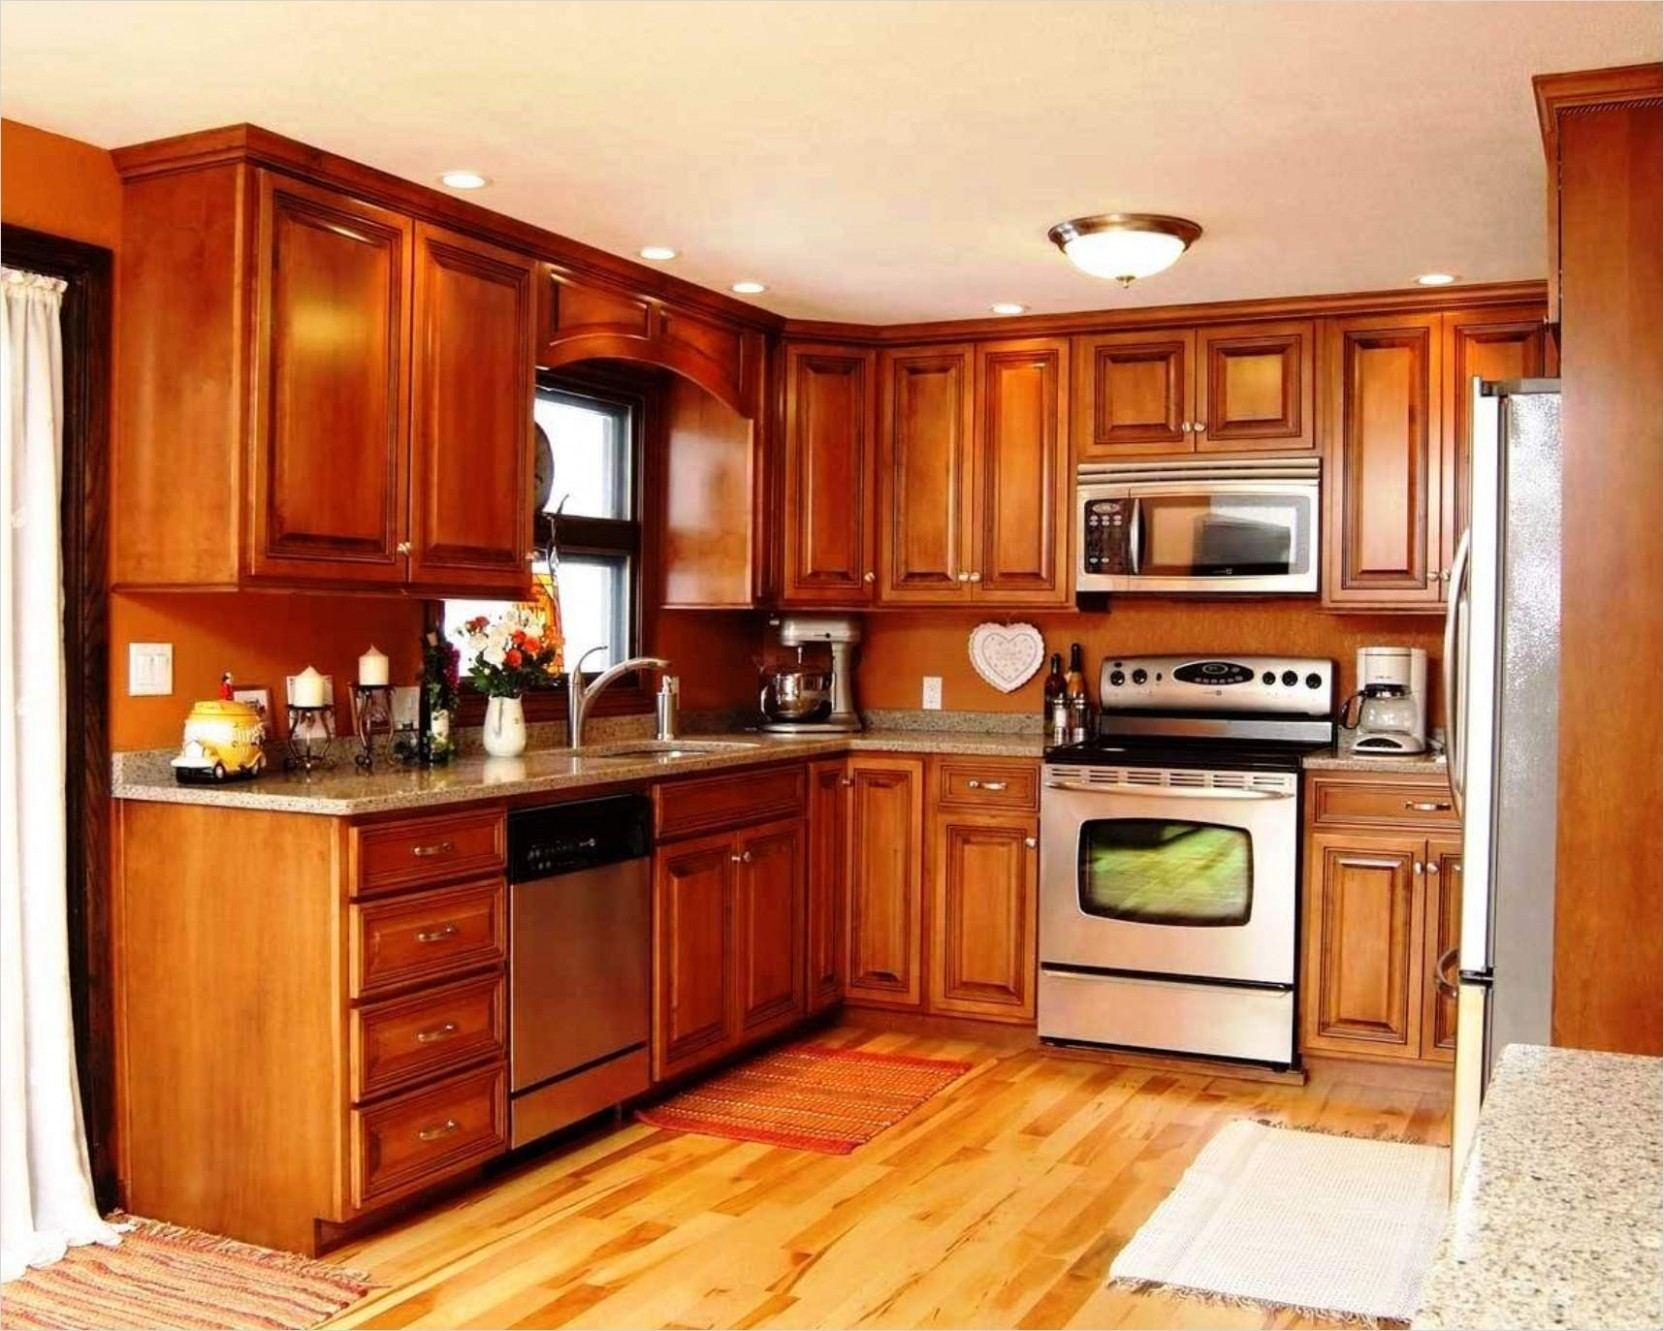 11 Attractive Kitchen with Maple Cabinets Color Ideas - Gongetech - What Color To Paint Kitchen Walls With Maple Cabinets